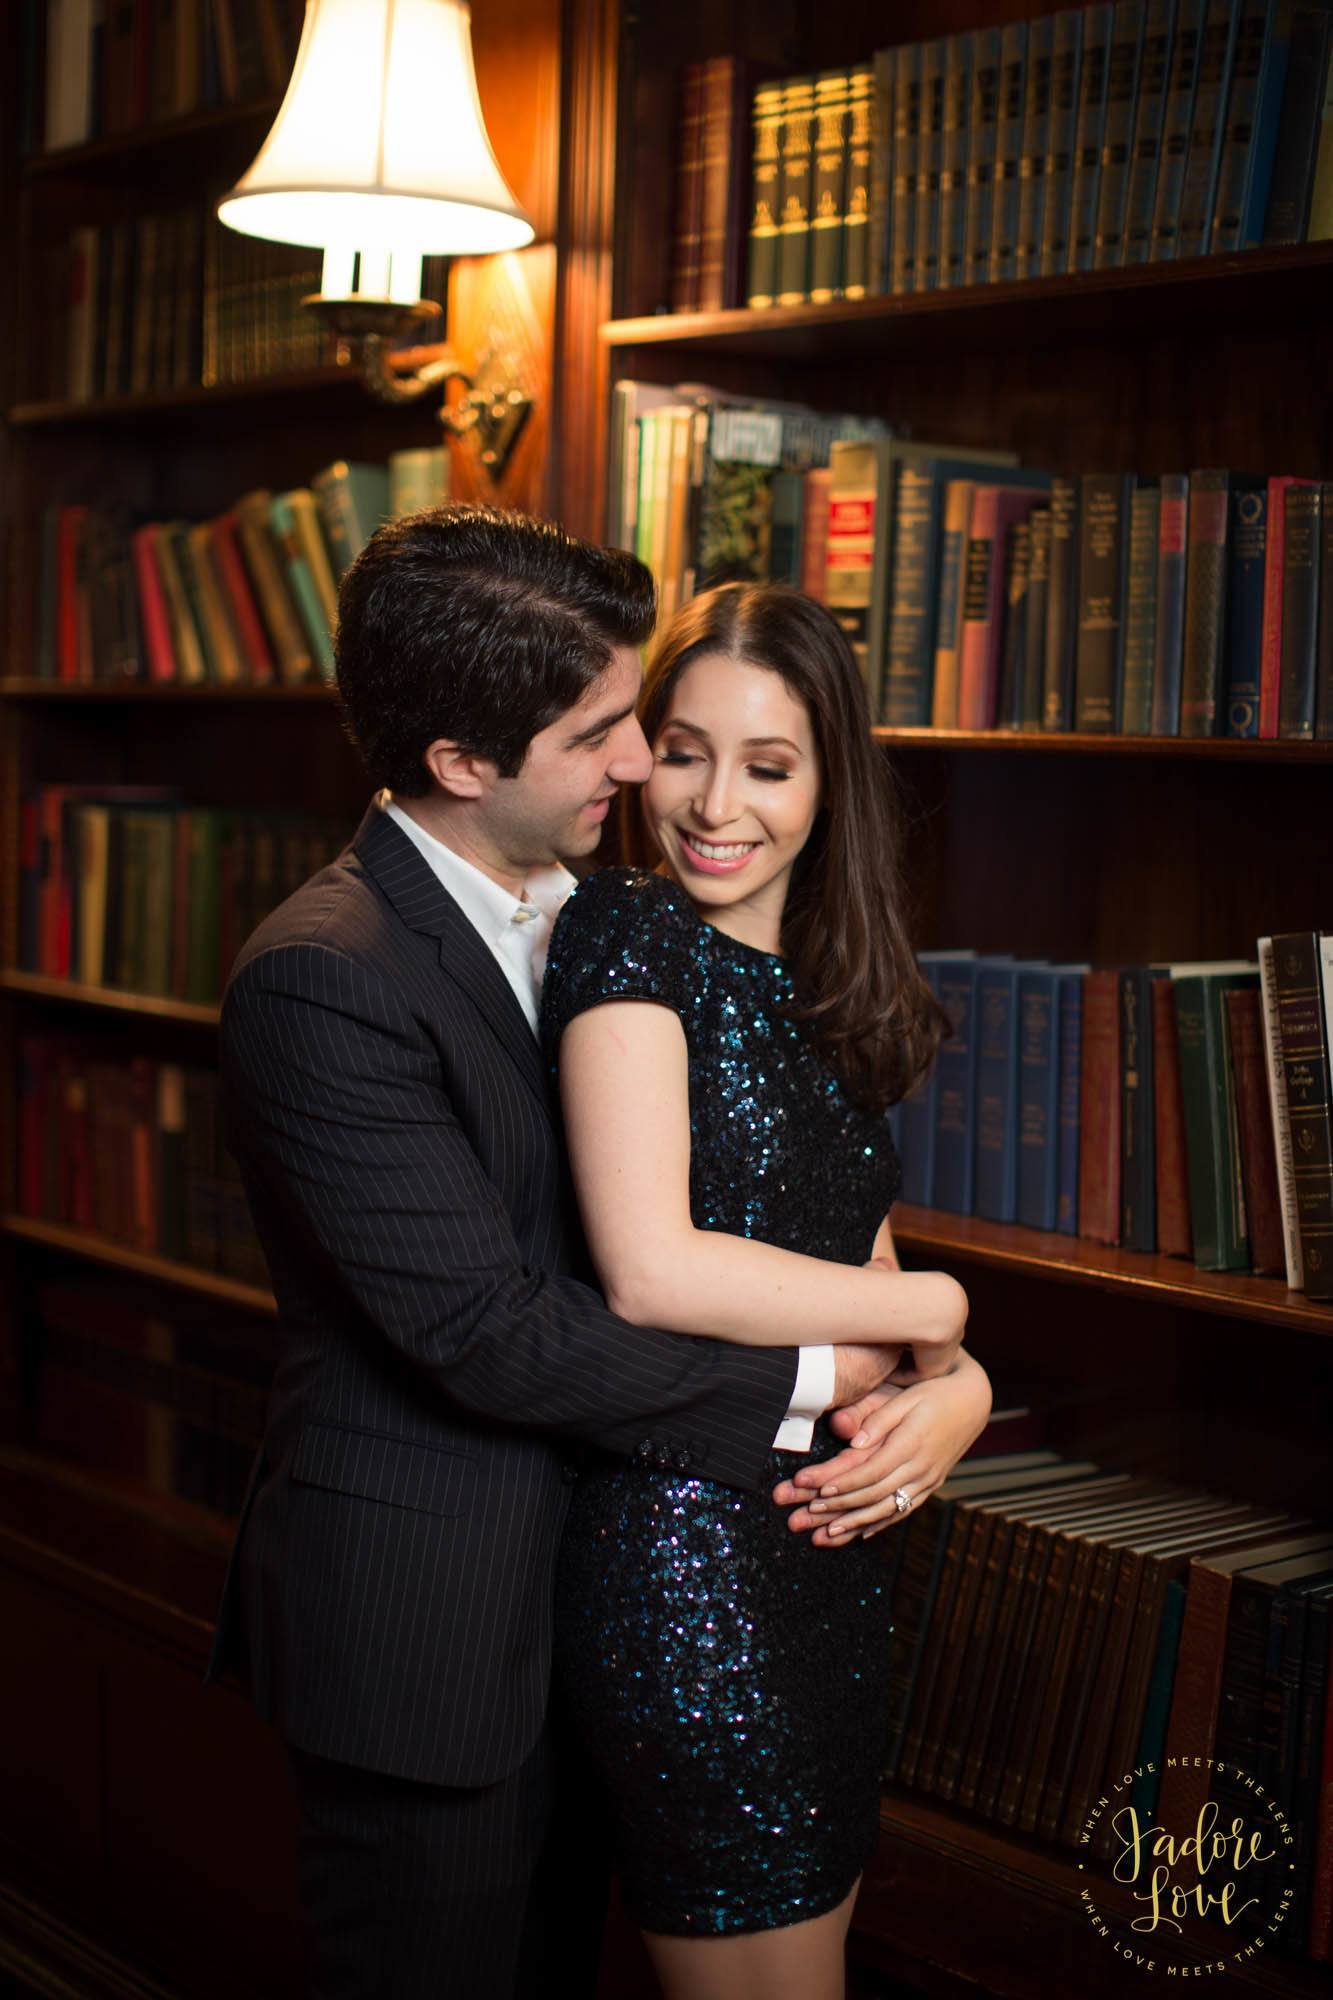 lotto palace hotel engagement